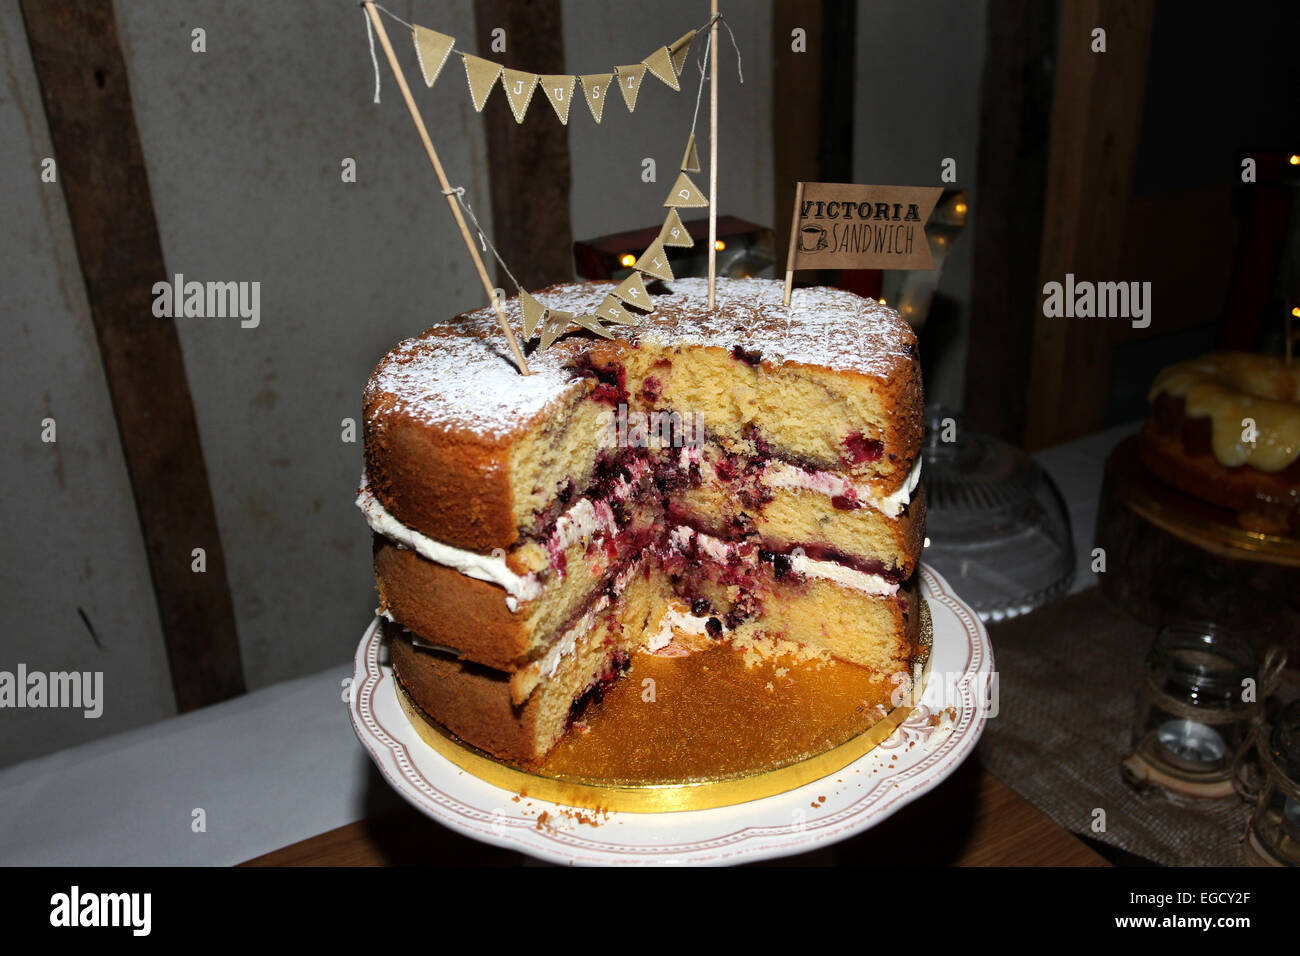 Tasty cake on a tray at a wedding reception at Southend Barns in Chichester, West Sussex, UK. - Stock Image